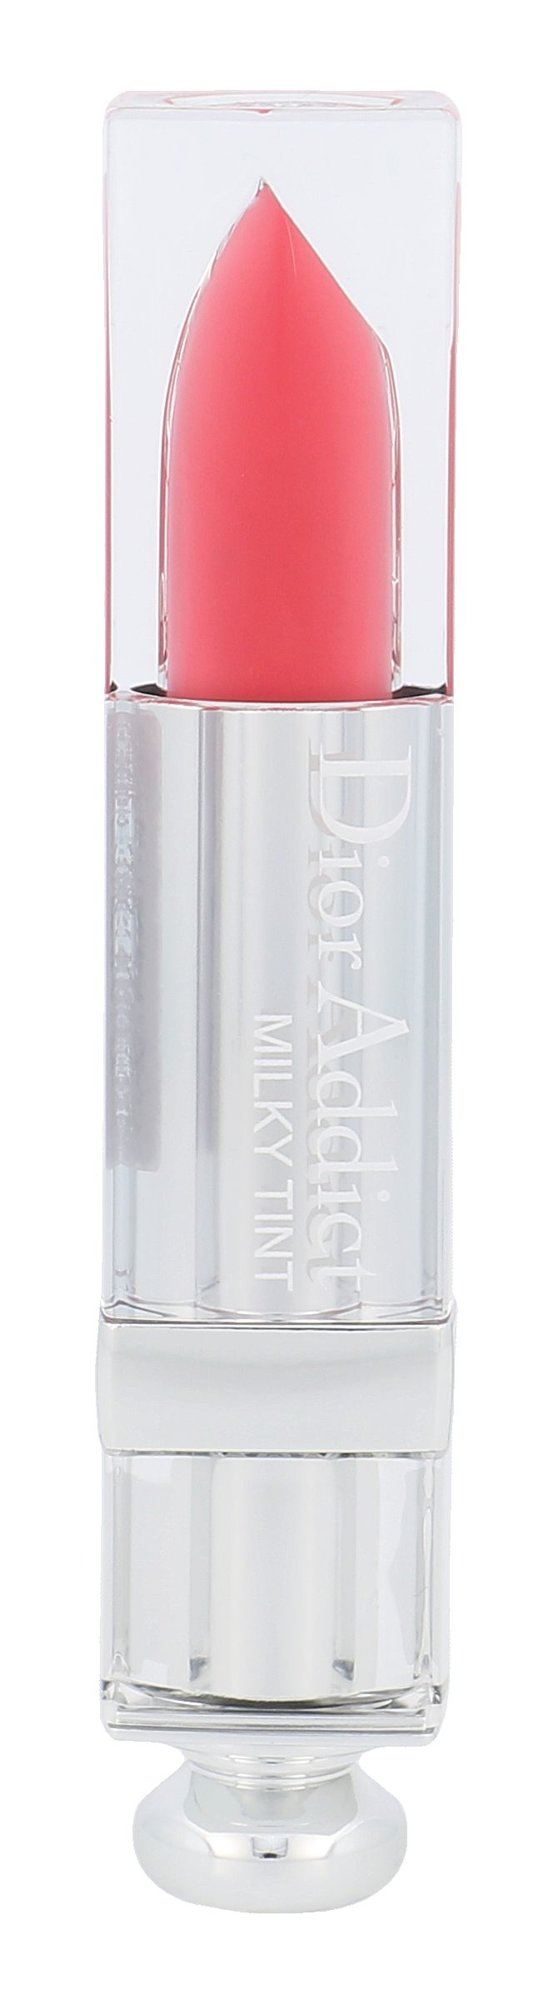 Christian Dior Addict Cosmetic 5,5ml 376 Milky Pop